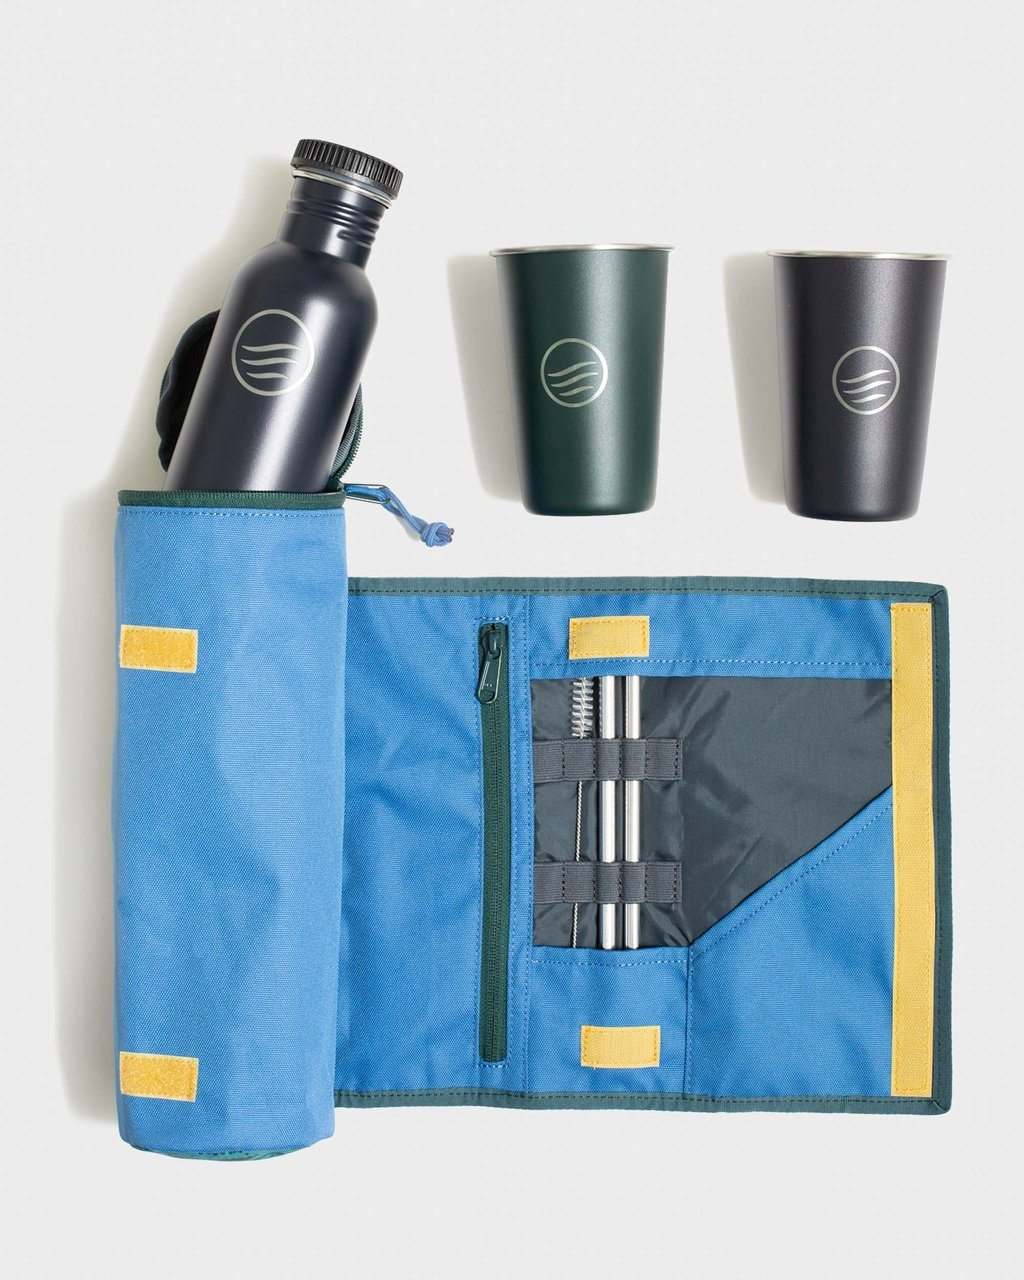 The Drink Kit accessory United by Blue